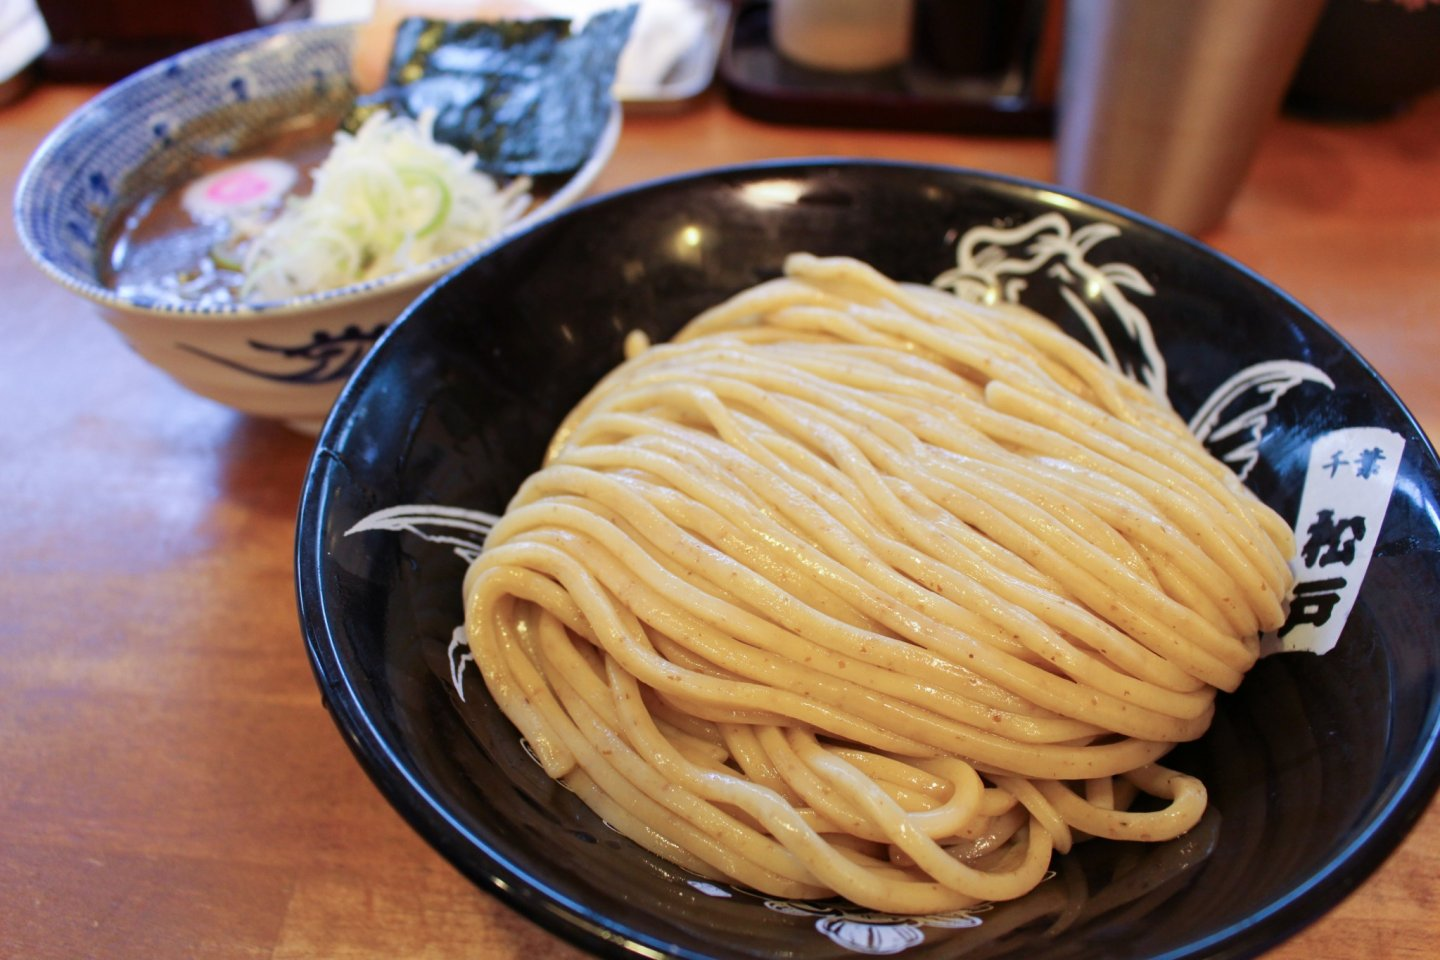 Another shot of the tsukesoba – tsukemen dipping noodles.